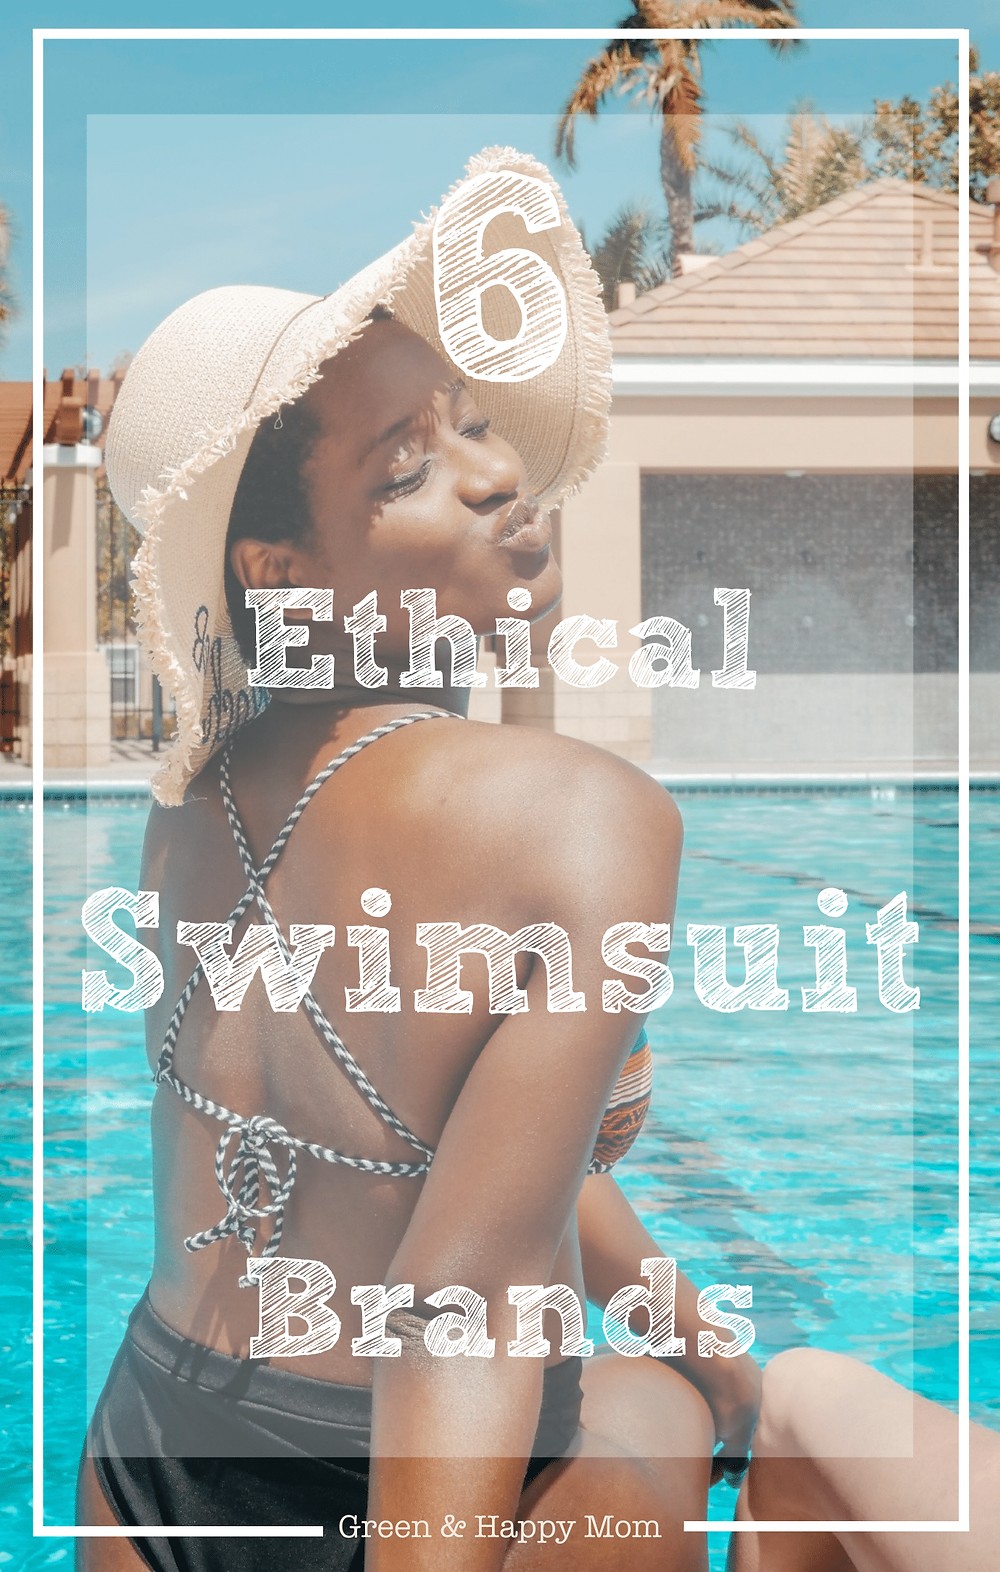 Ethical swimsuit brands